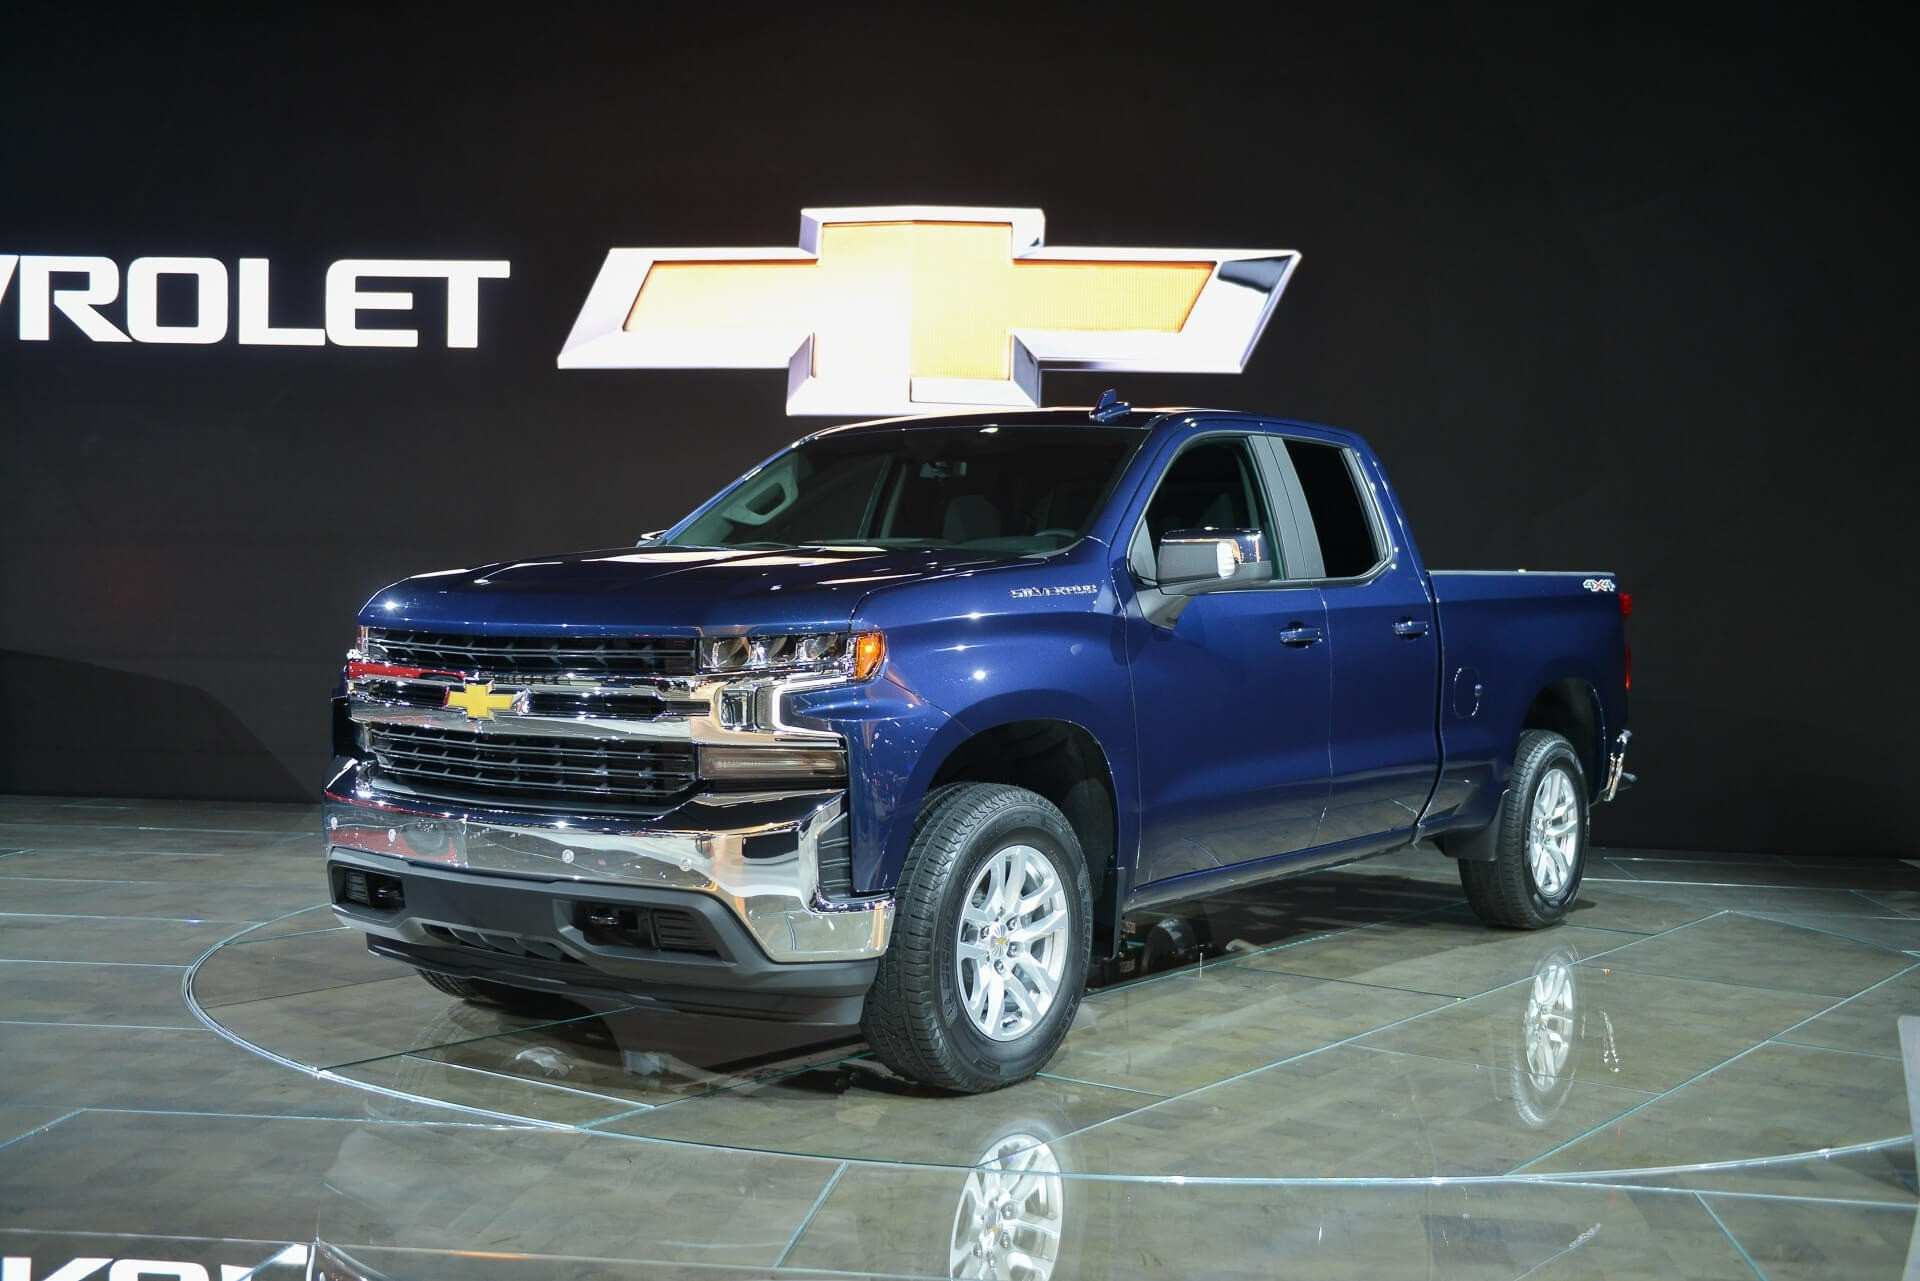 63 All New 2020 Chevy Avalanche Review